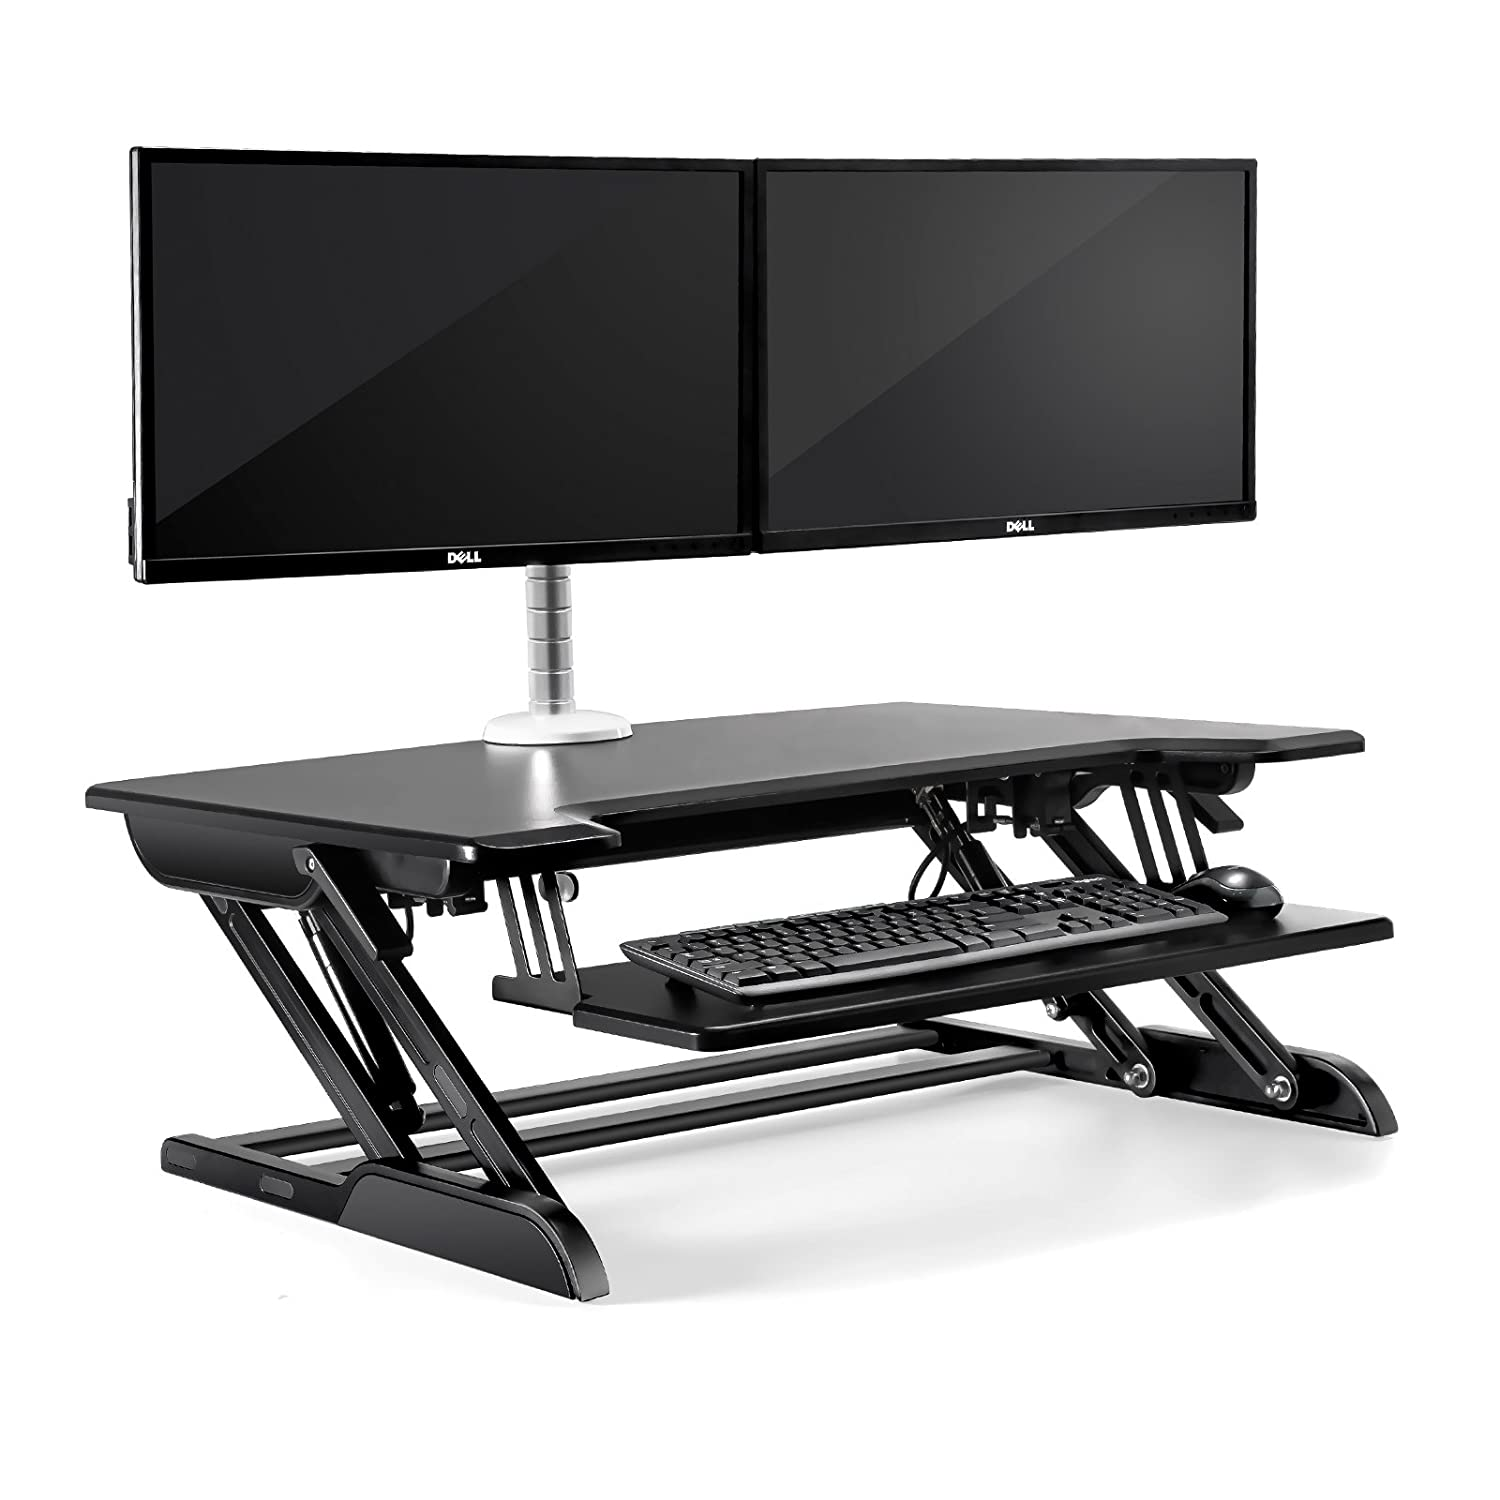 UPERGO 36 Aluminum Frame Height Adjustable Sit-Standing Desk Converter with Keyboard Tray, Black(ID-36B)